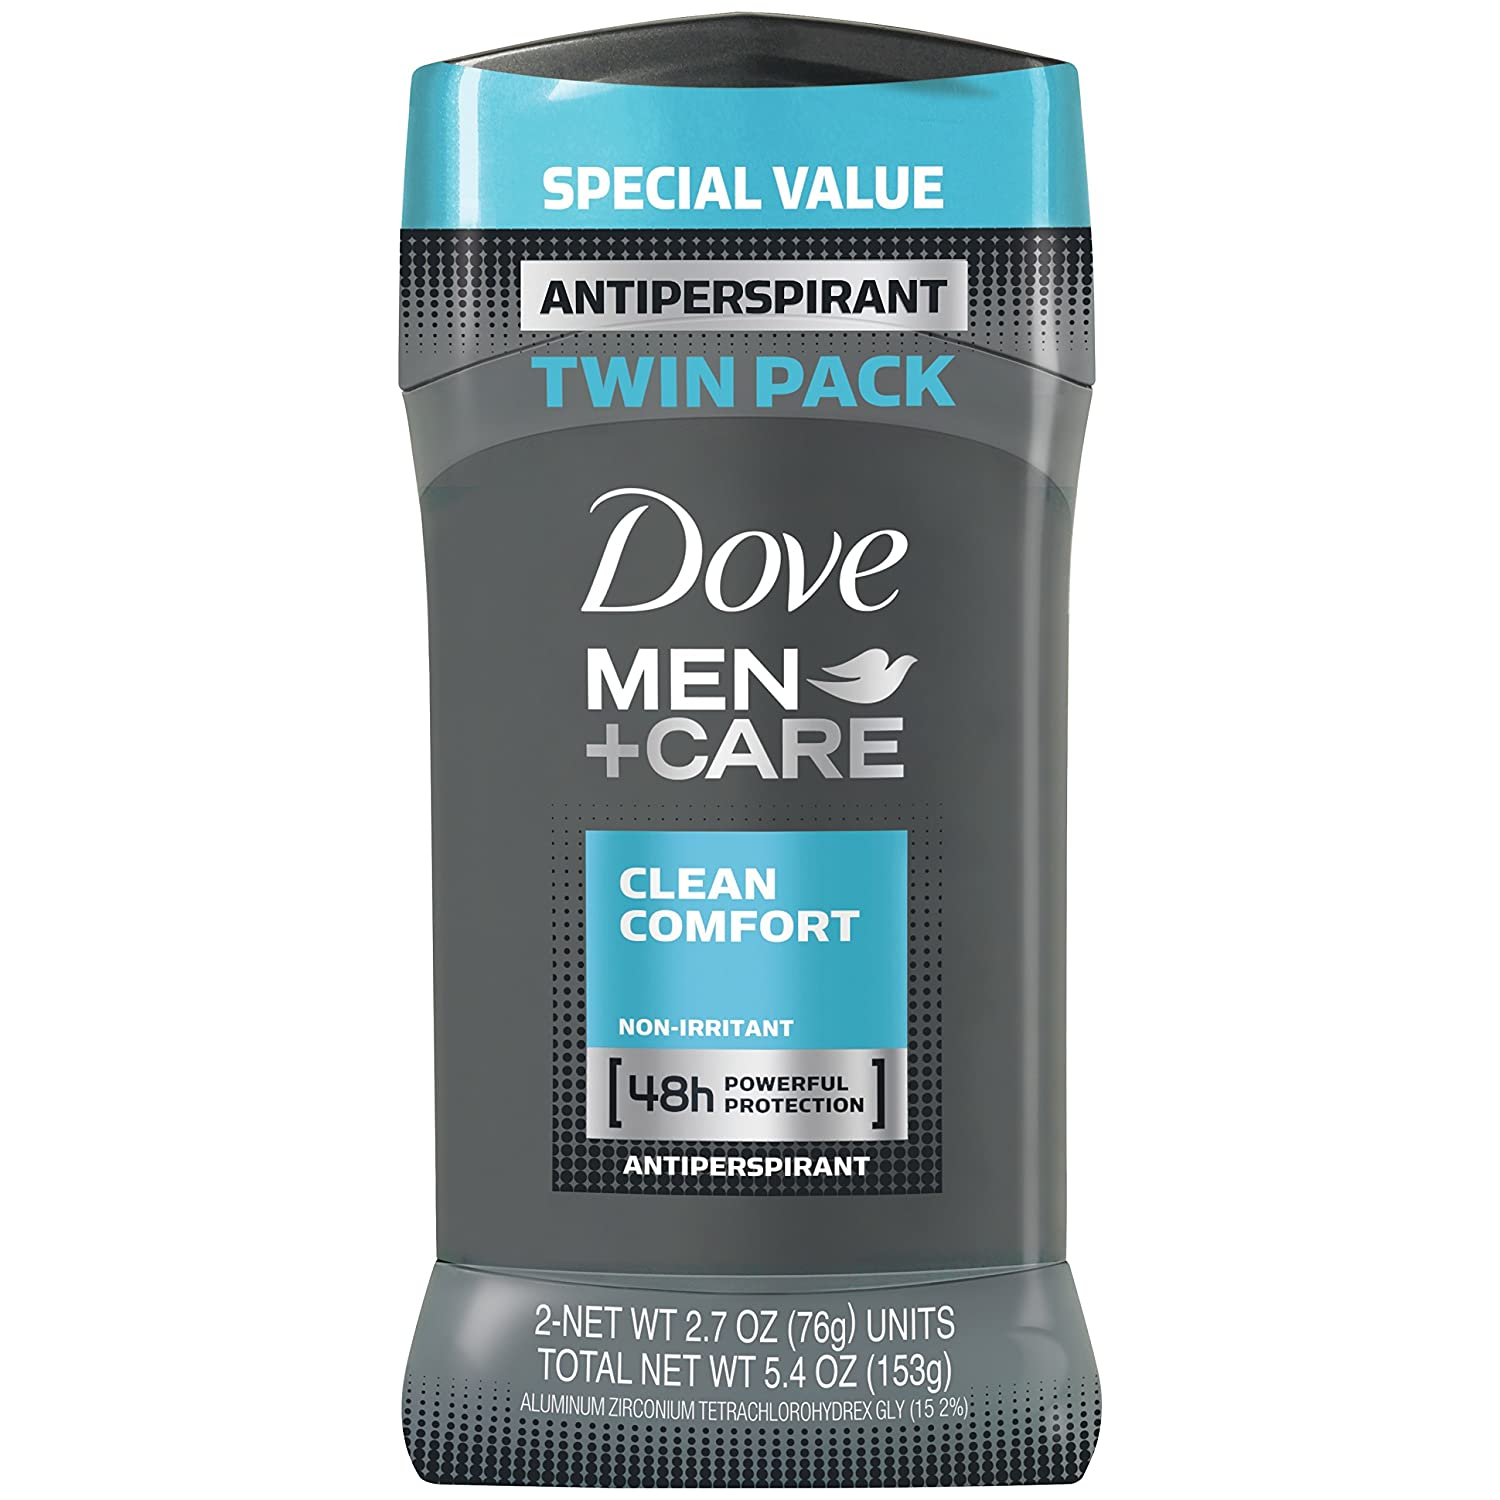 Dove Men+Care Antiperspirant Deodorant Stick, Clean Comfort 2.7 Ounce (Pack of 2), Twin Pack